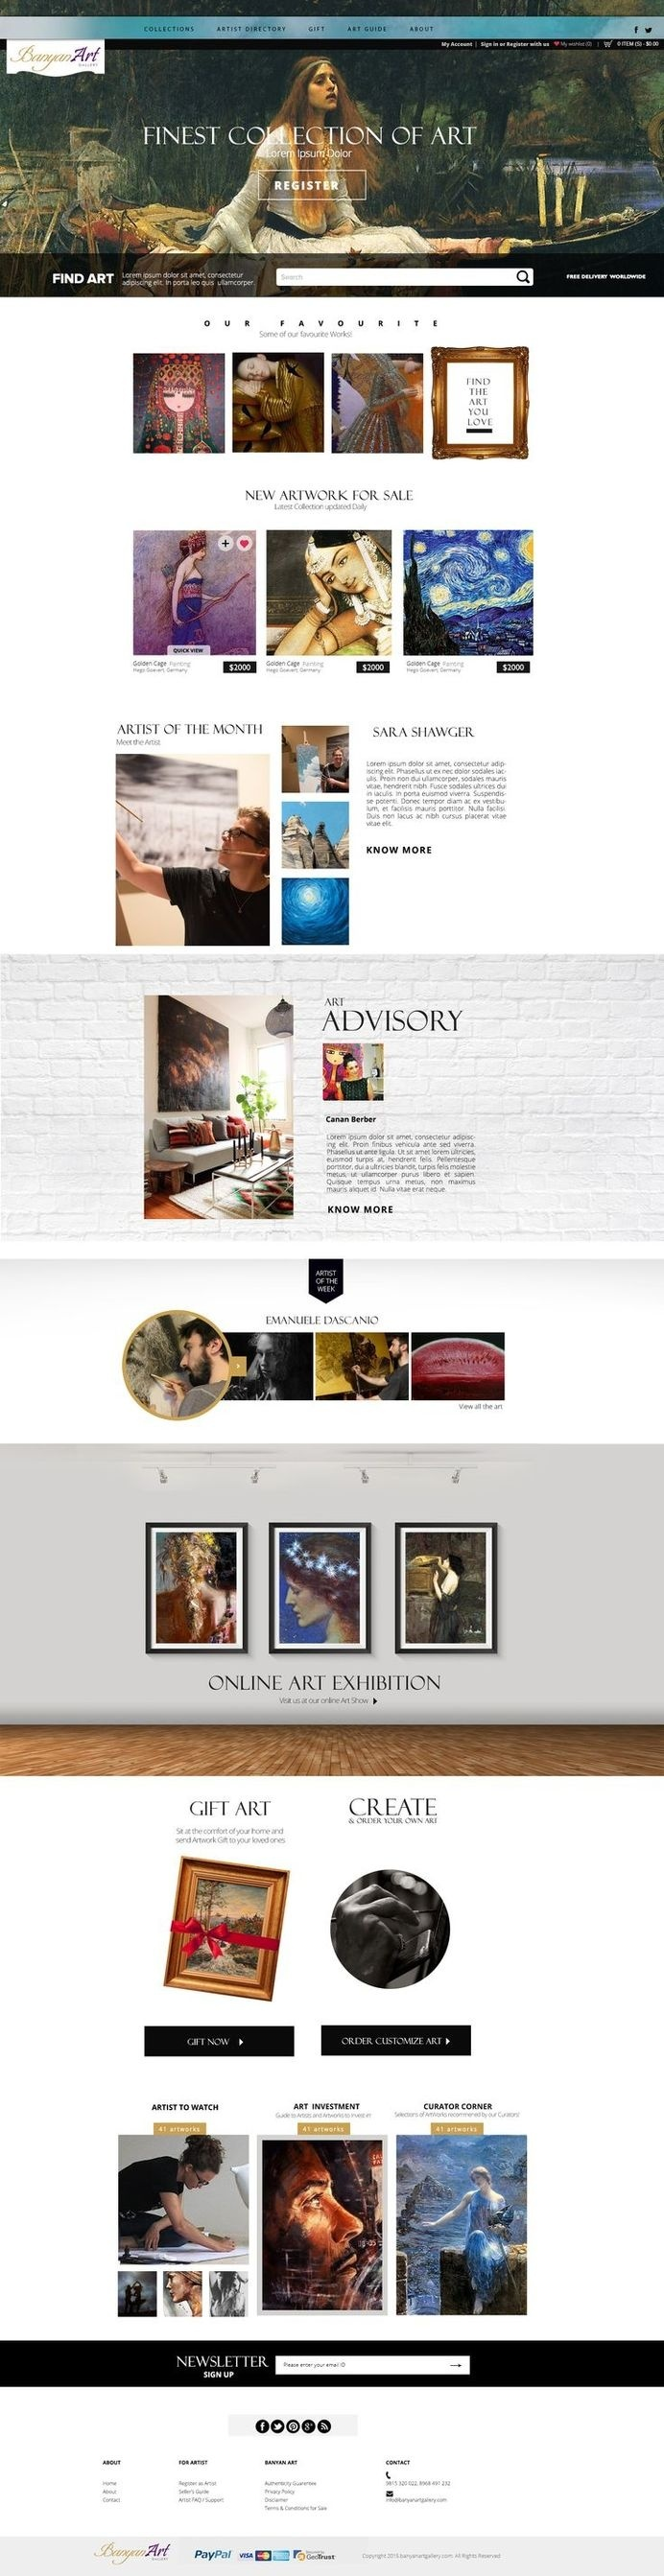 Layout for Global Art and Artists. #modern #design #concept #art #painting #layout #web